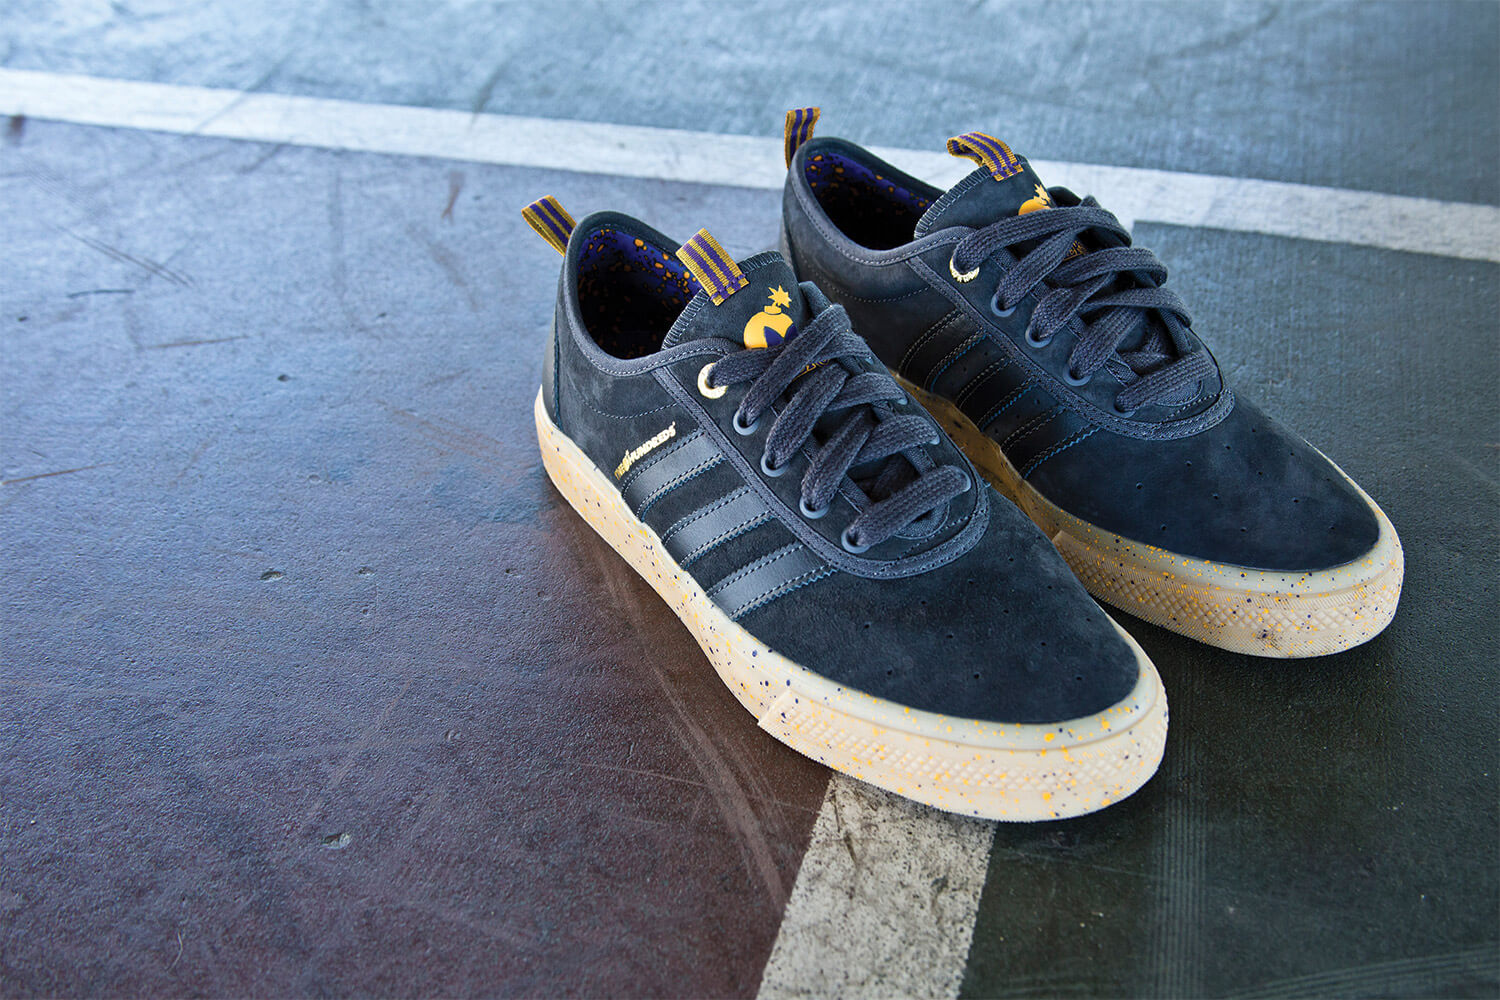 Sneakers ,Capsule Line By Adidas Skateboarding xThe Hundreds